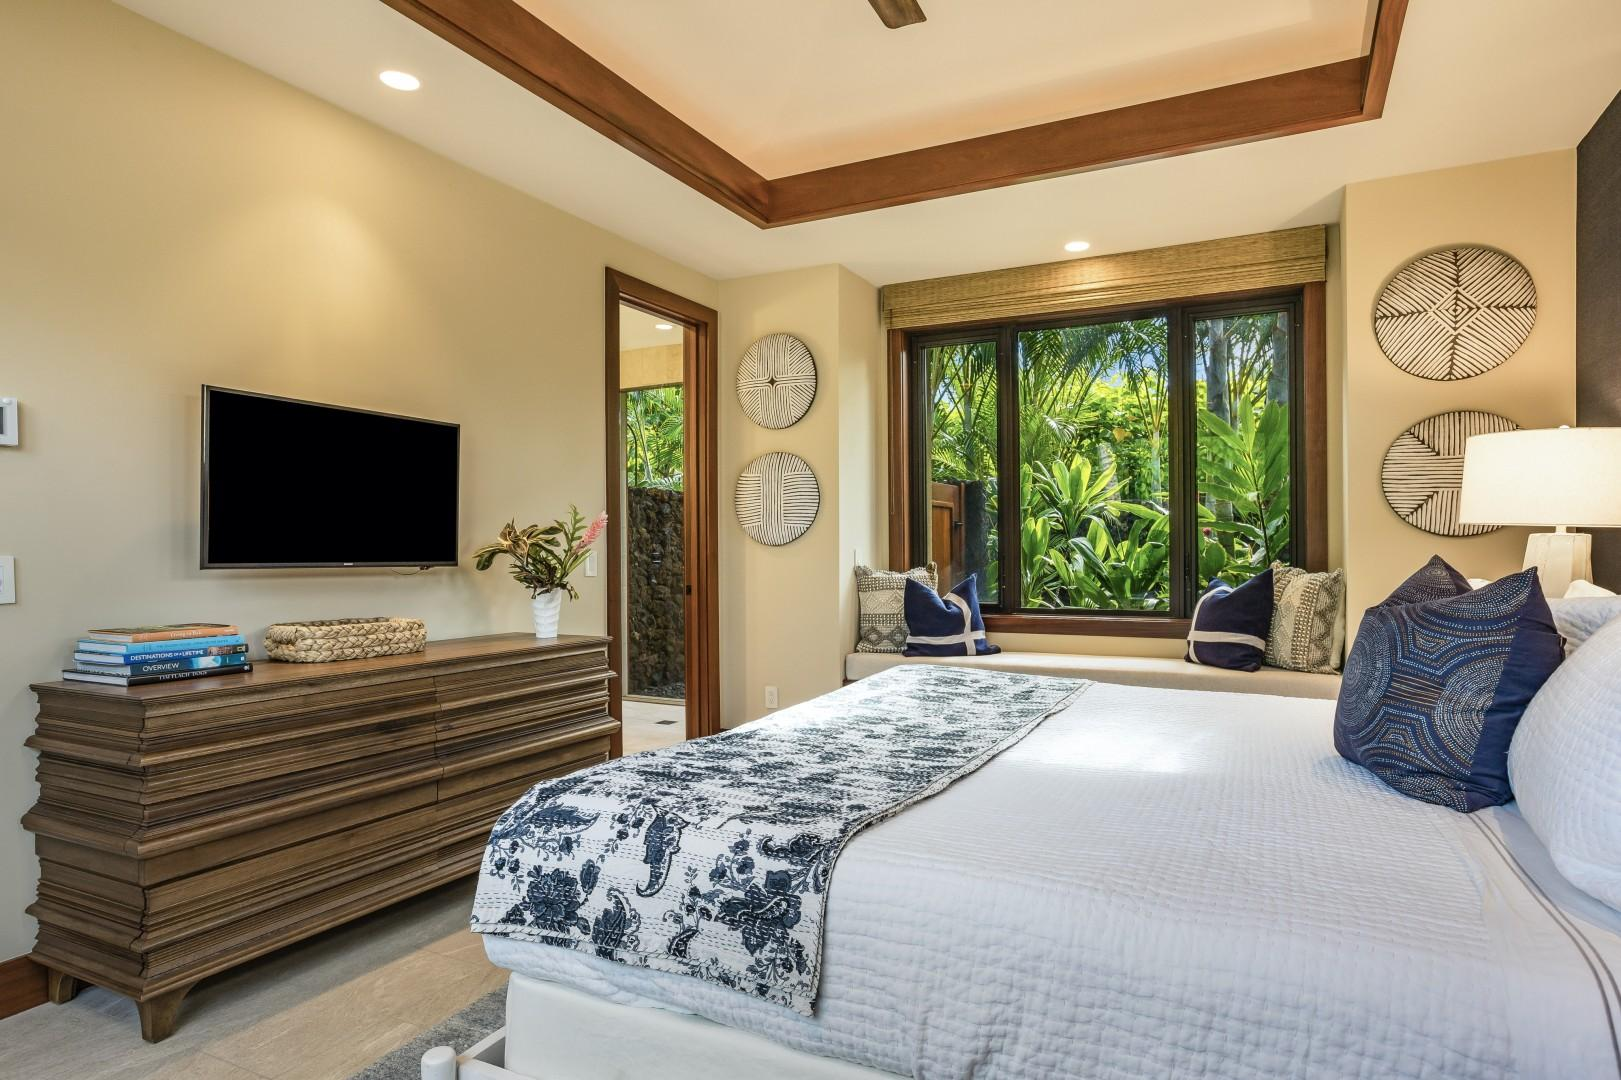 Reverse view of the third guest room showcasing king-sized bed and built in window seating.